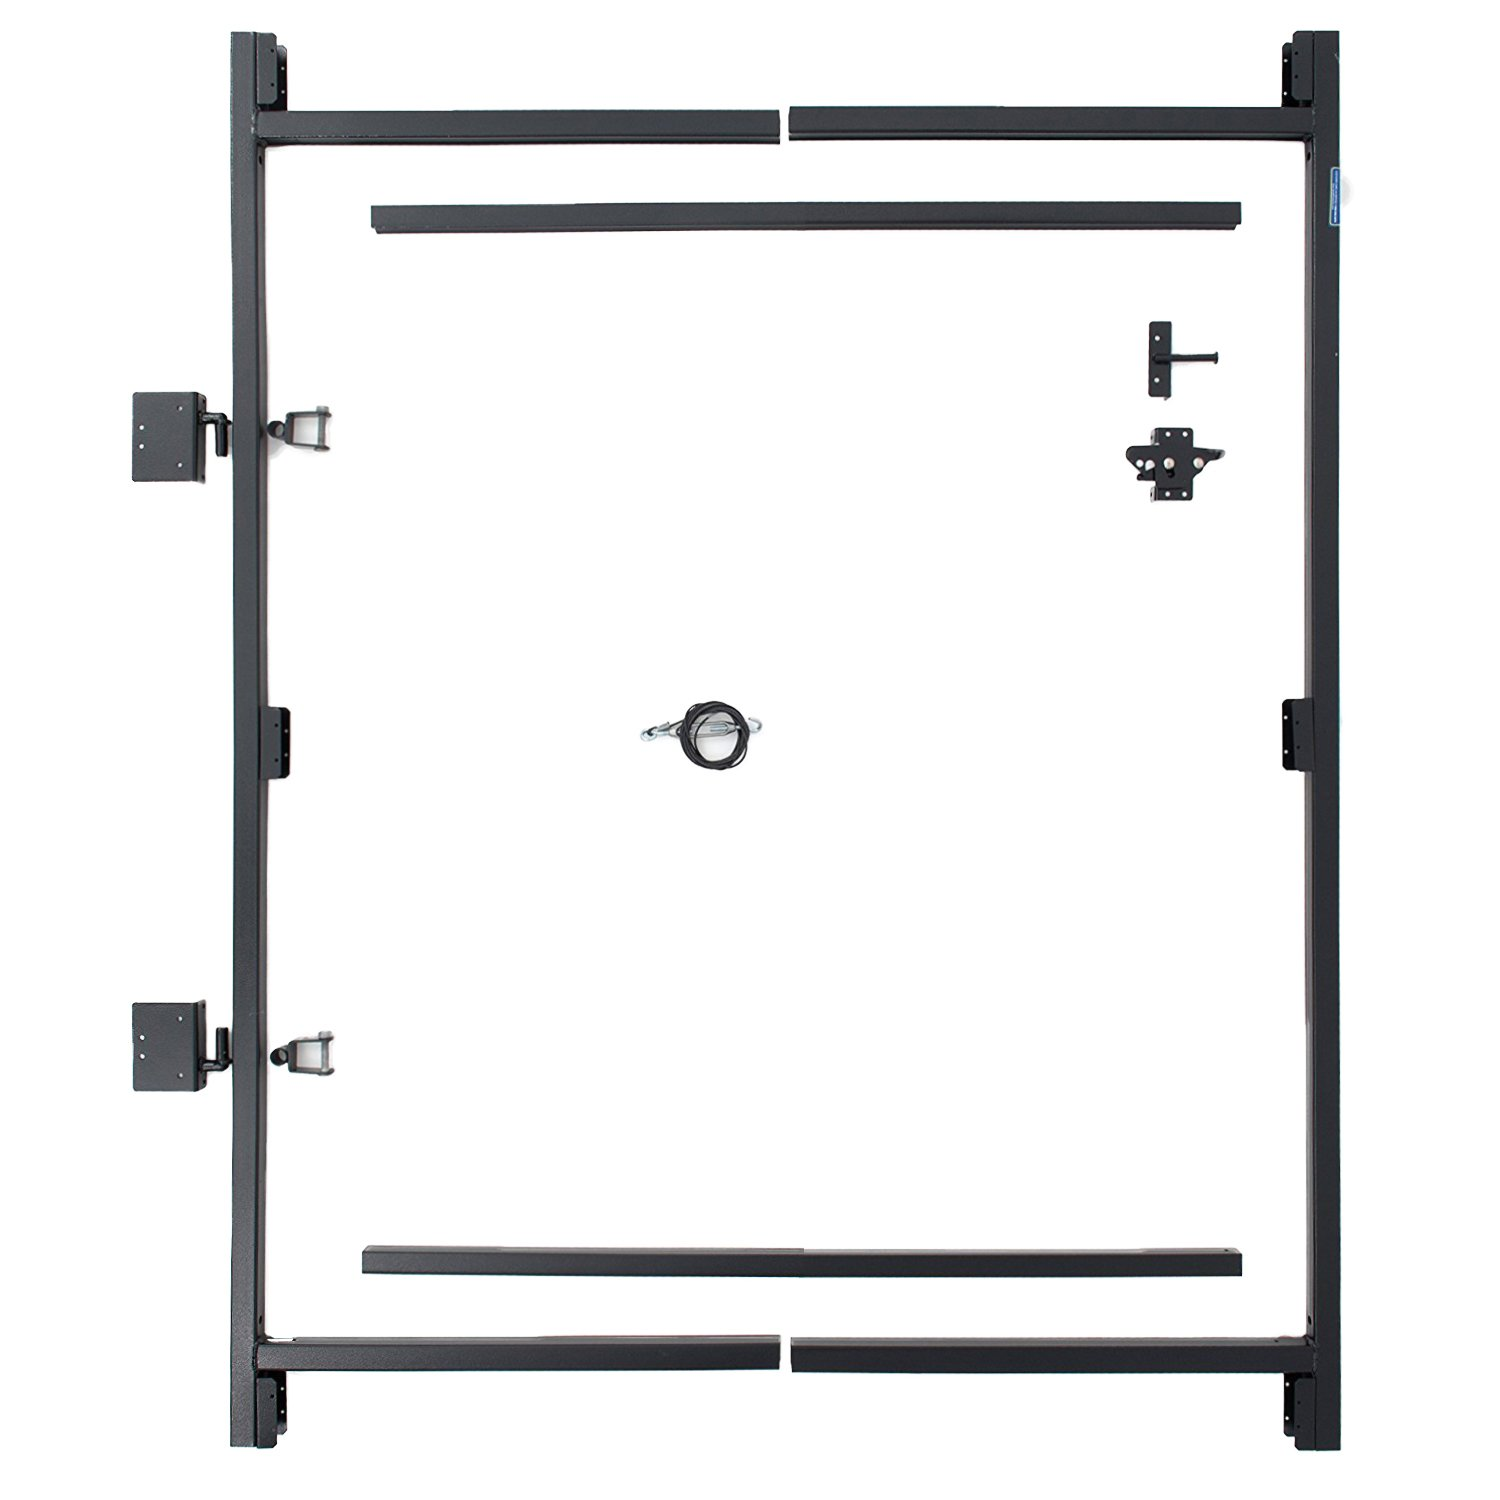 Fence Walk Through Gate Kit - Adjust-A-Gate Steel Frame No Sag Gate Building Kit - This anti-sag gate kit is perfect for repairing existing sagging gates or building new ones. (36''-60'' wide openings up to 7' high fence)